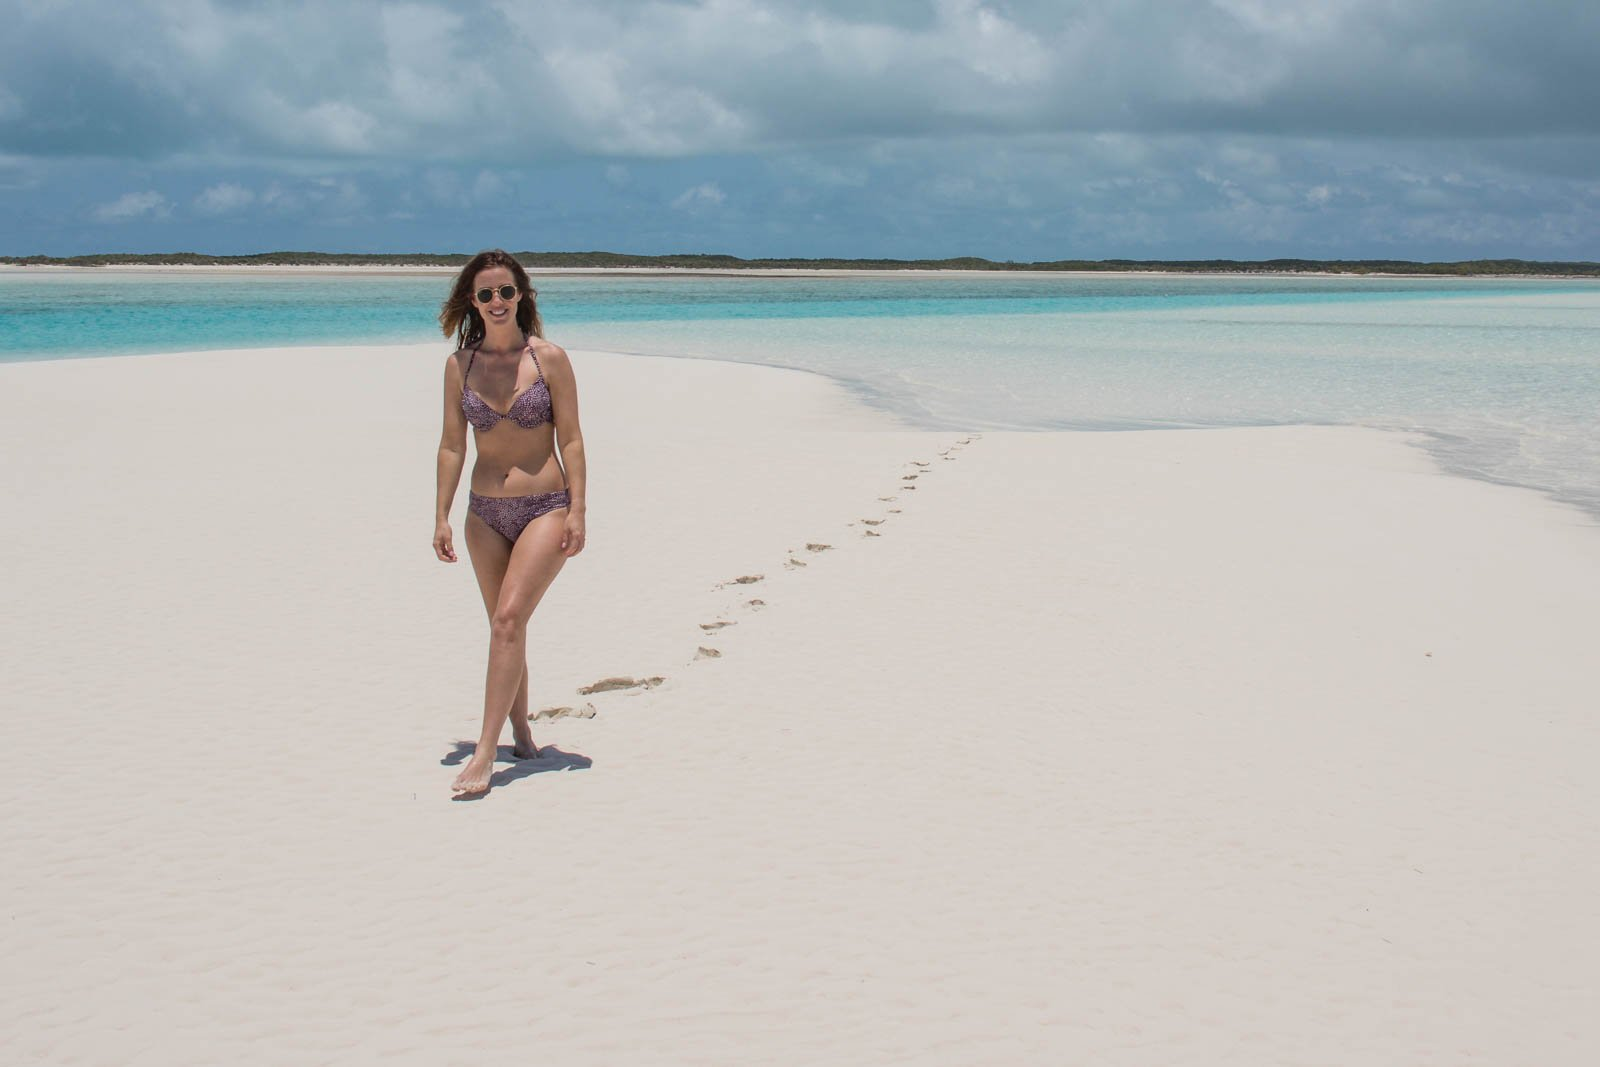 One day trip to Bahamas to secluded beaches and sand bars. Day trips to Bahamas are as convenient as ever.